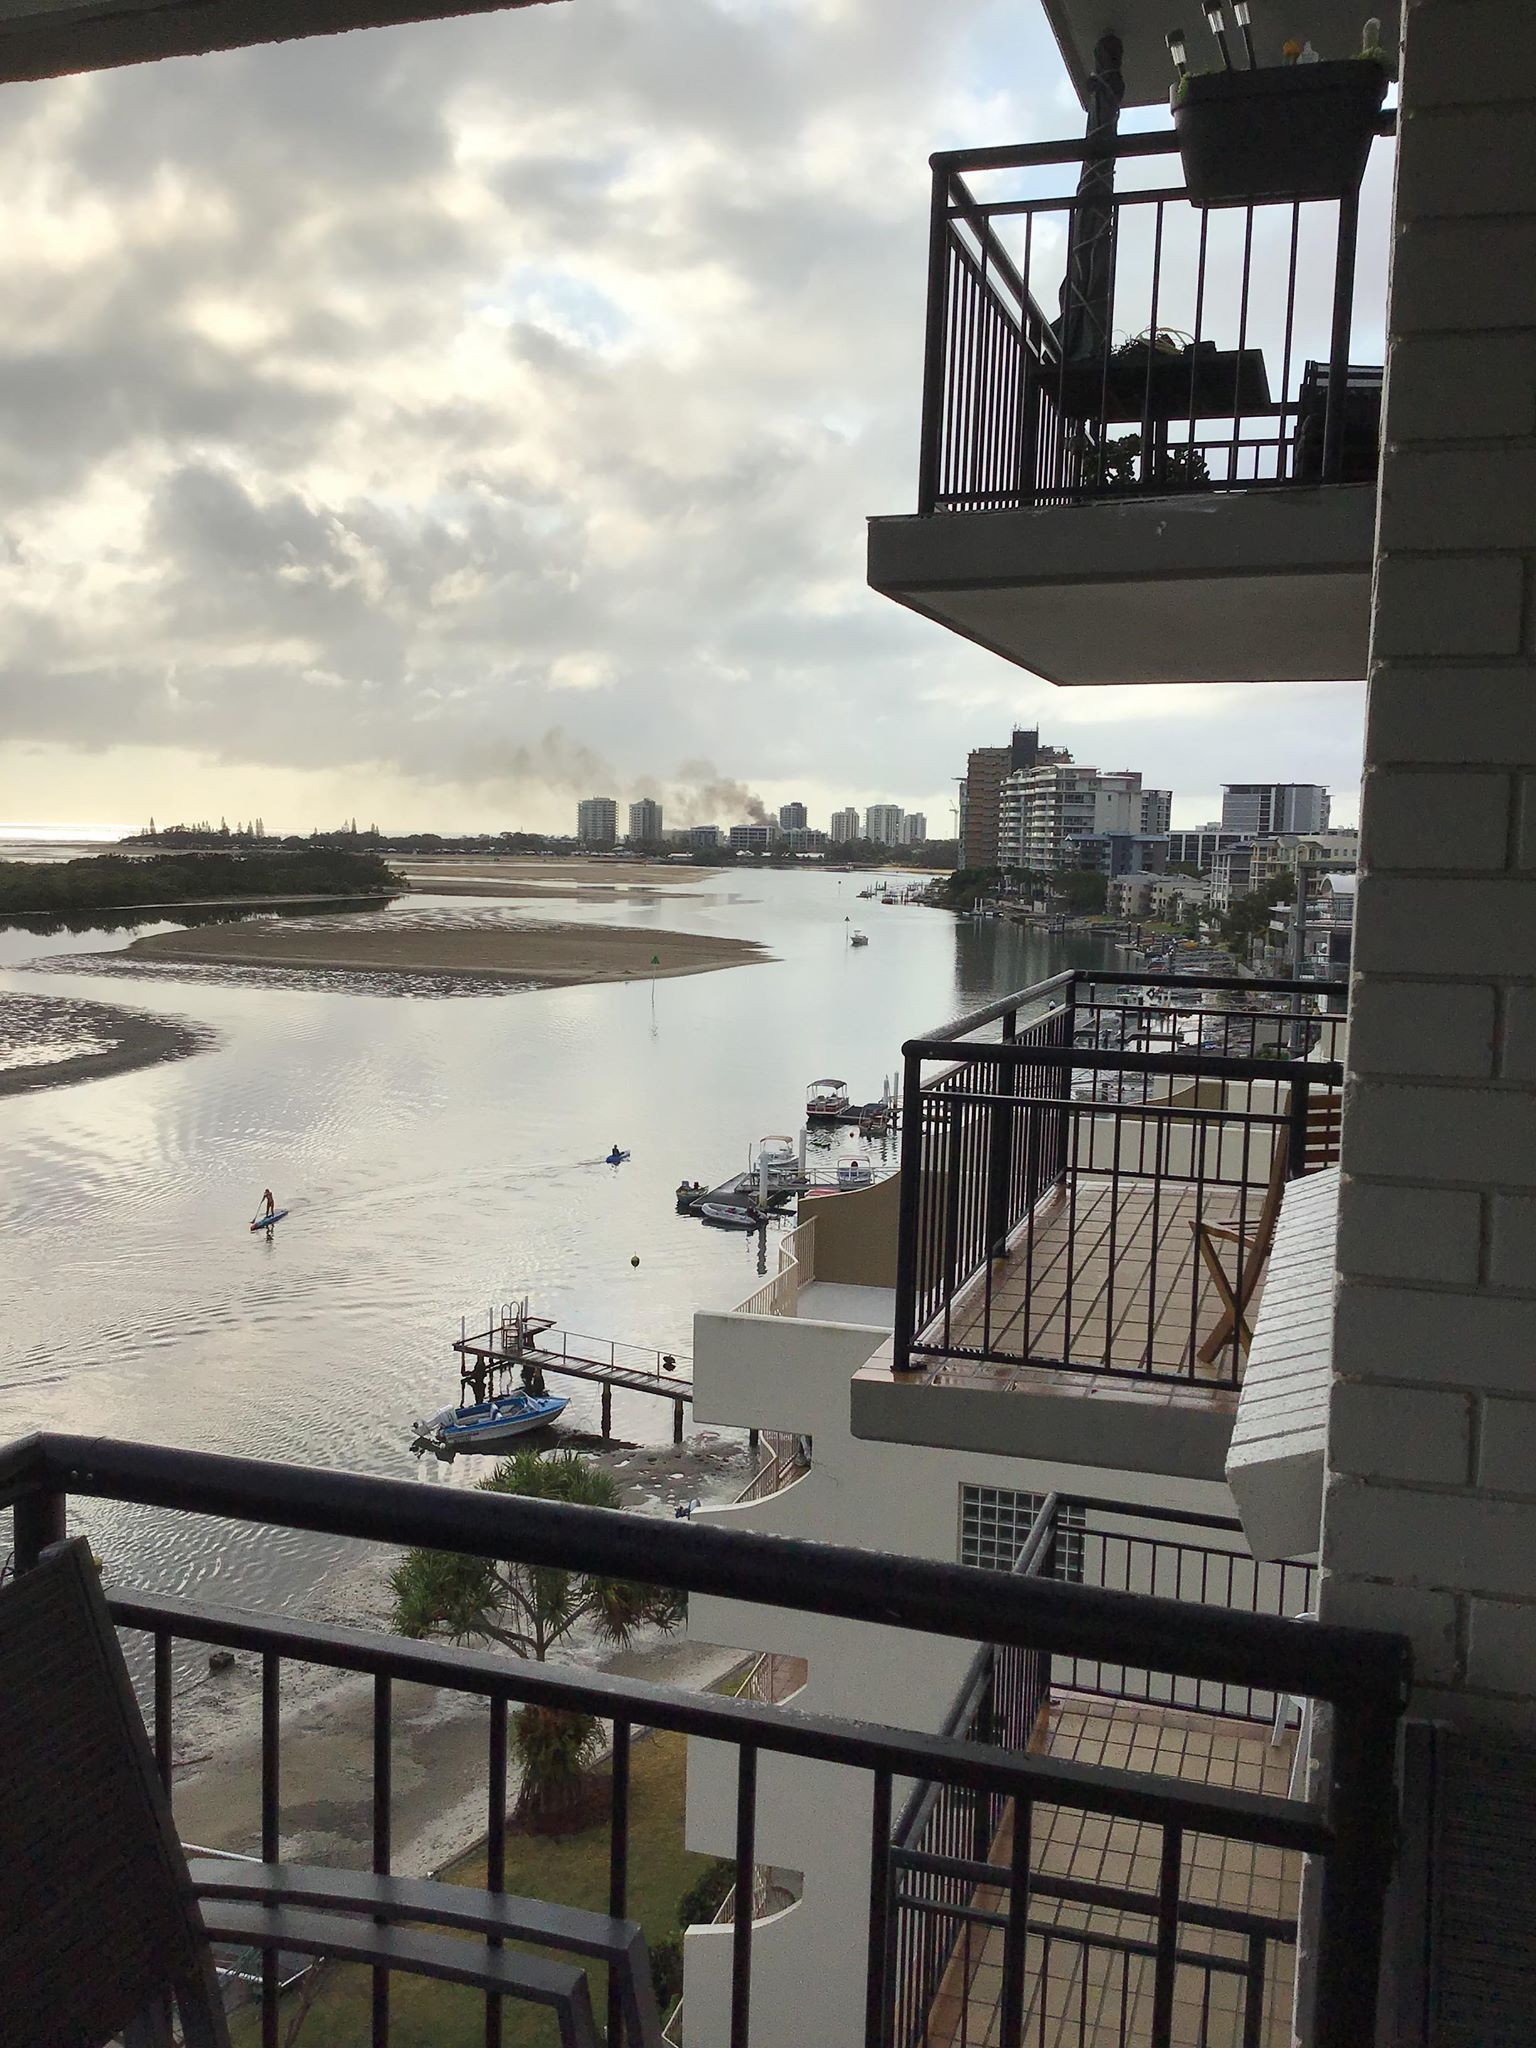 A resident at Duporth Ave captured the smoke billowing over Cotton Tree.